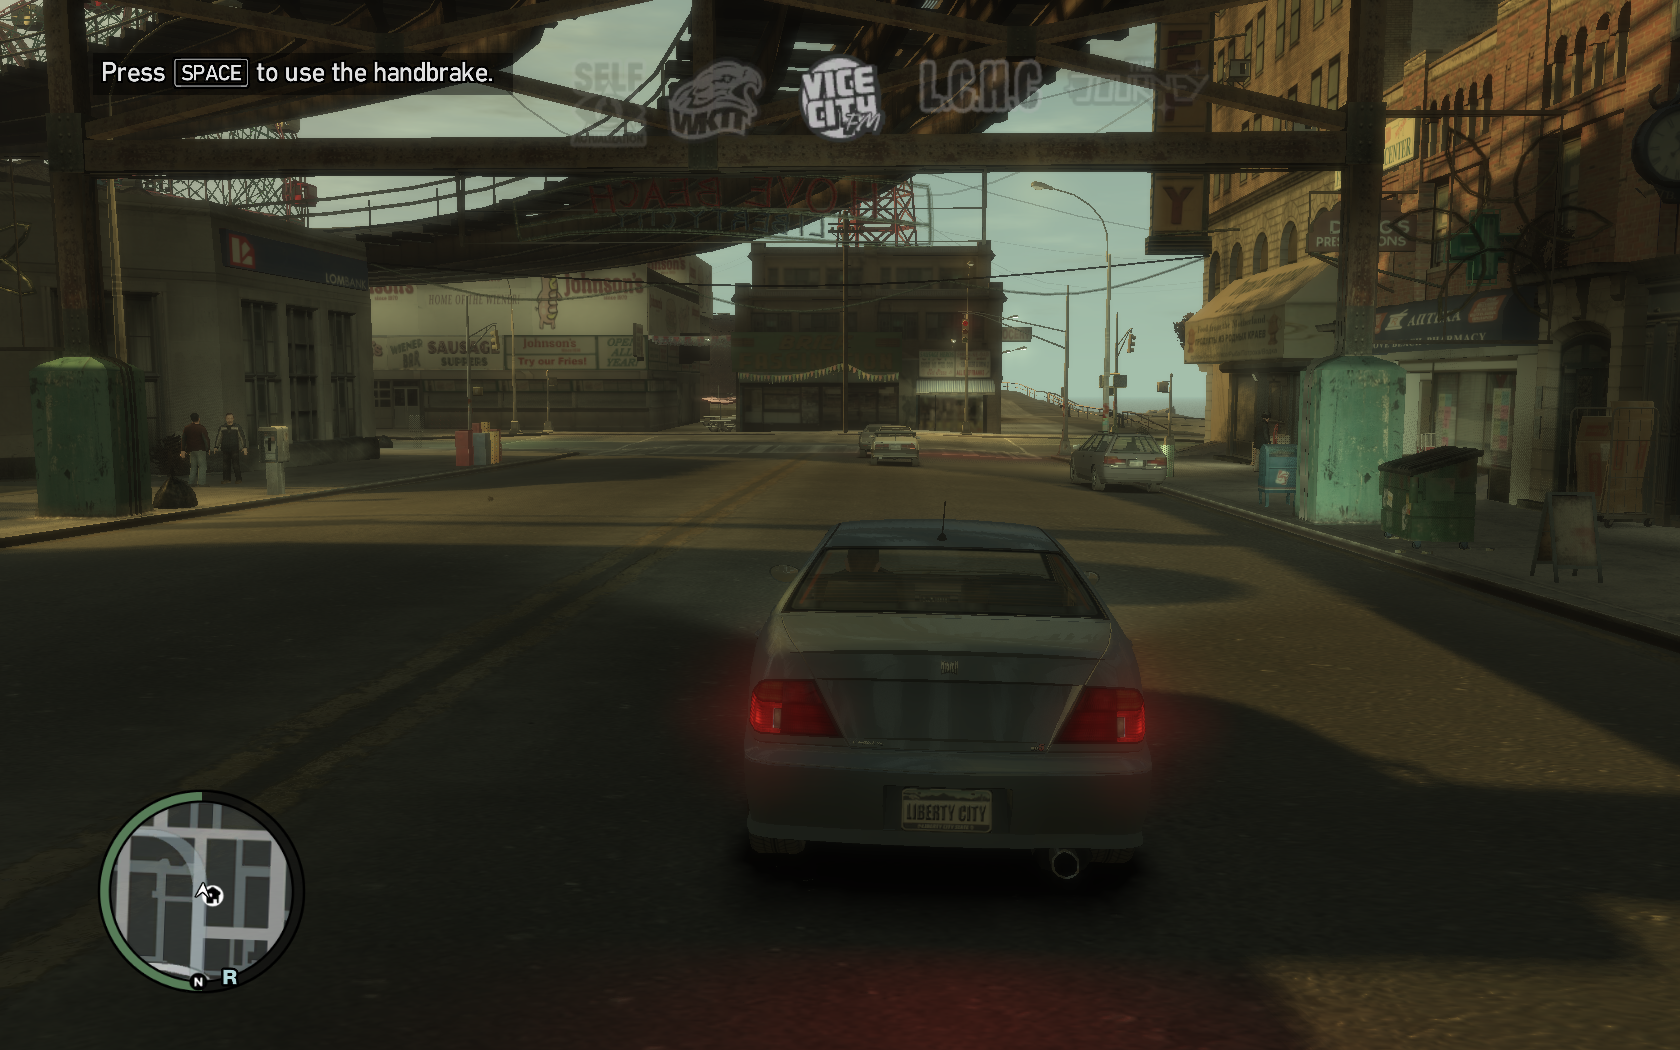 GTAIV_2018-09-20_19-04-32-85.png